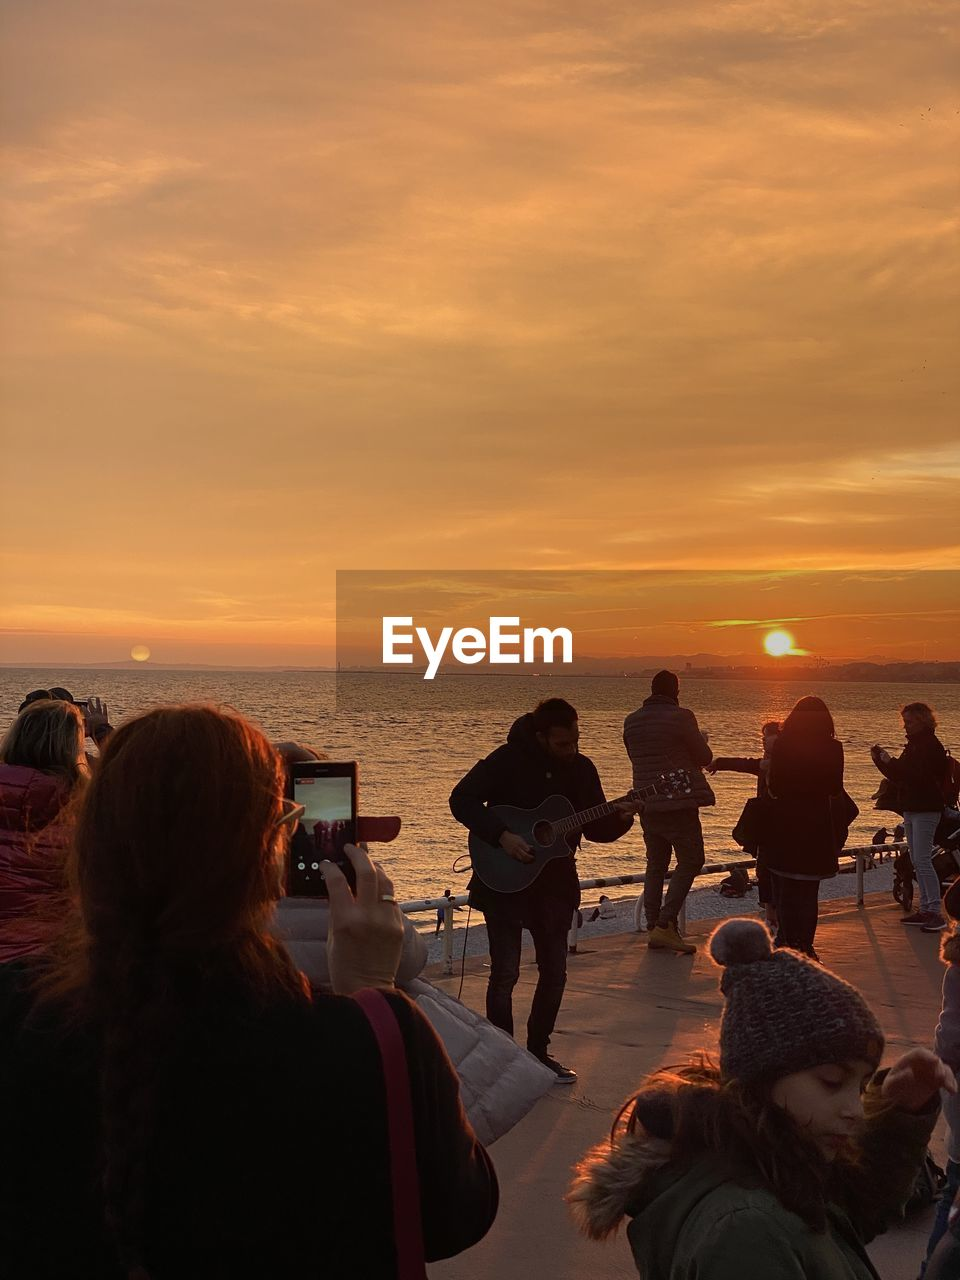 sunset, water, group of people, sea, sky, real people, horizon over water, orange color, women, beach, beauty in nature, leisure activity, horizon, adult, lifestyles, cloud - sky, land, scenics - nature, rear view, outdoors